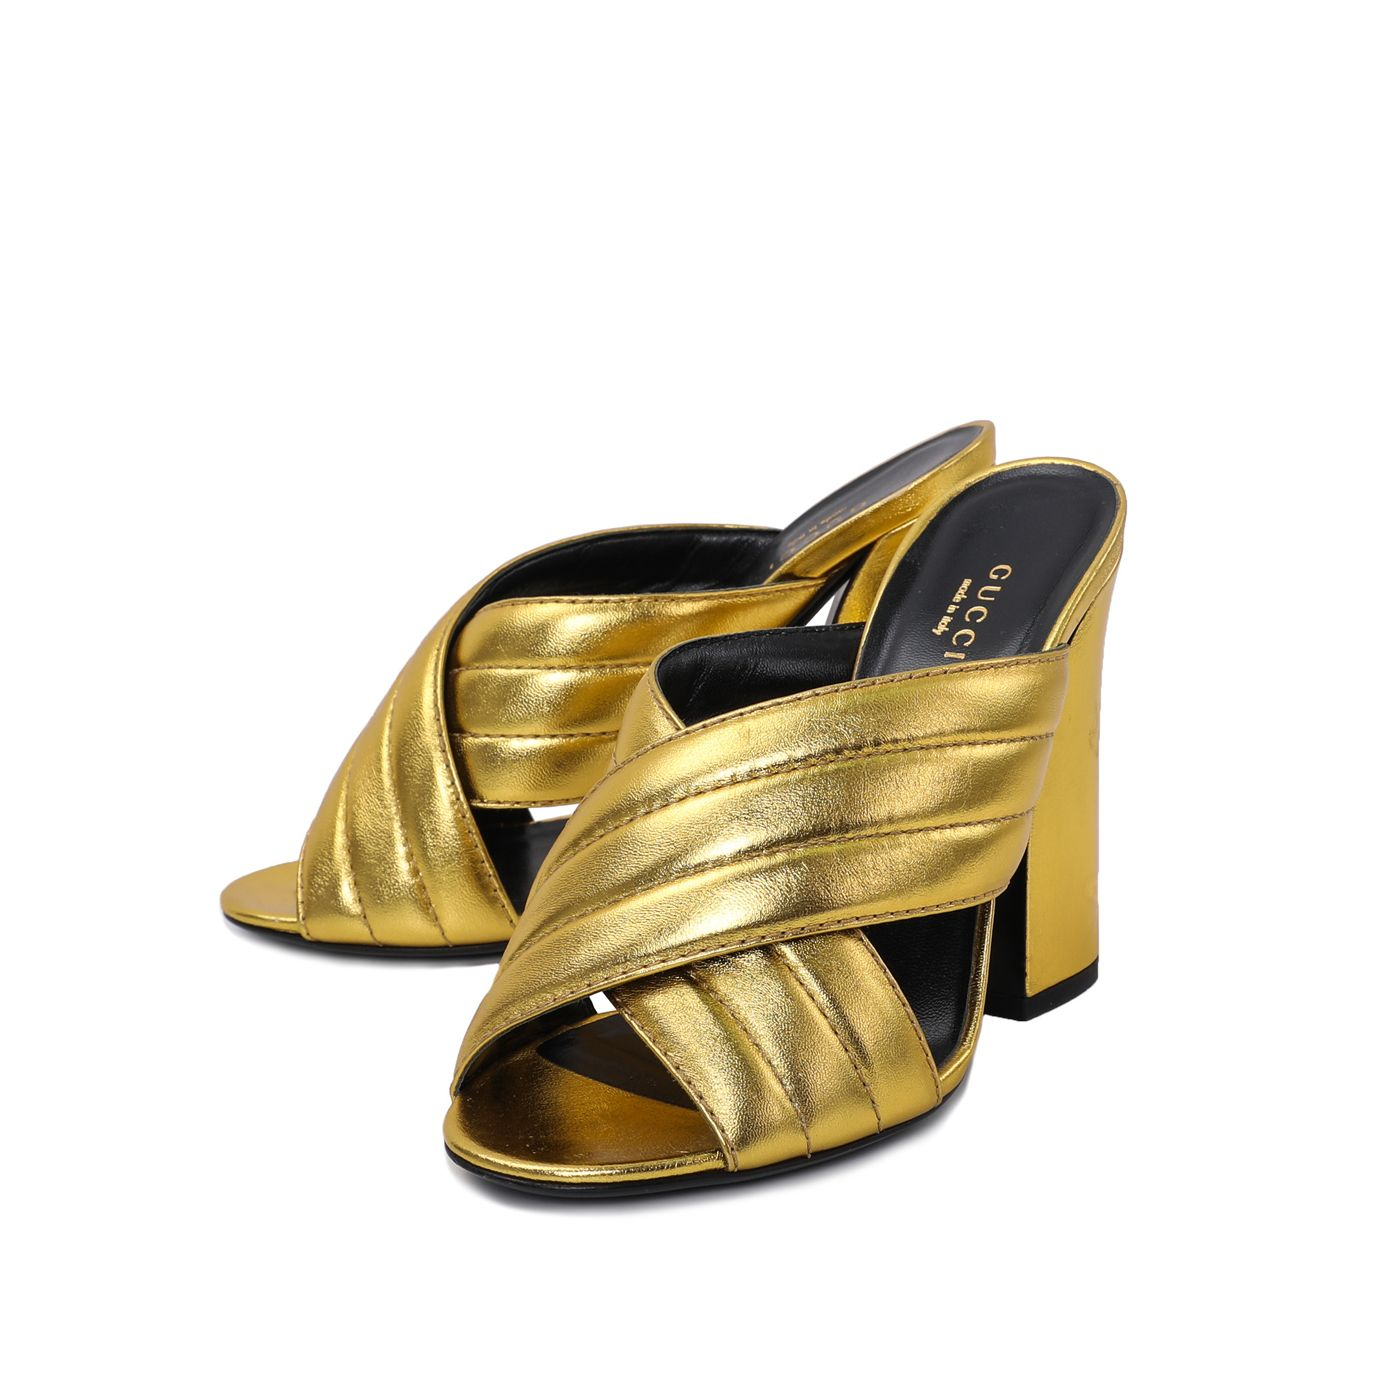 Gucci Metallic Gold Crossover Sandals 38